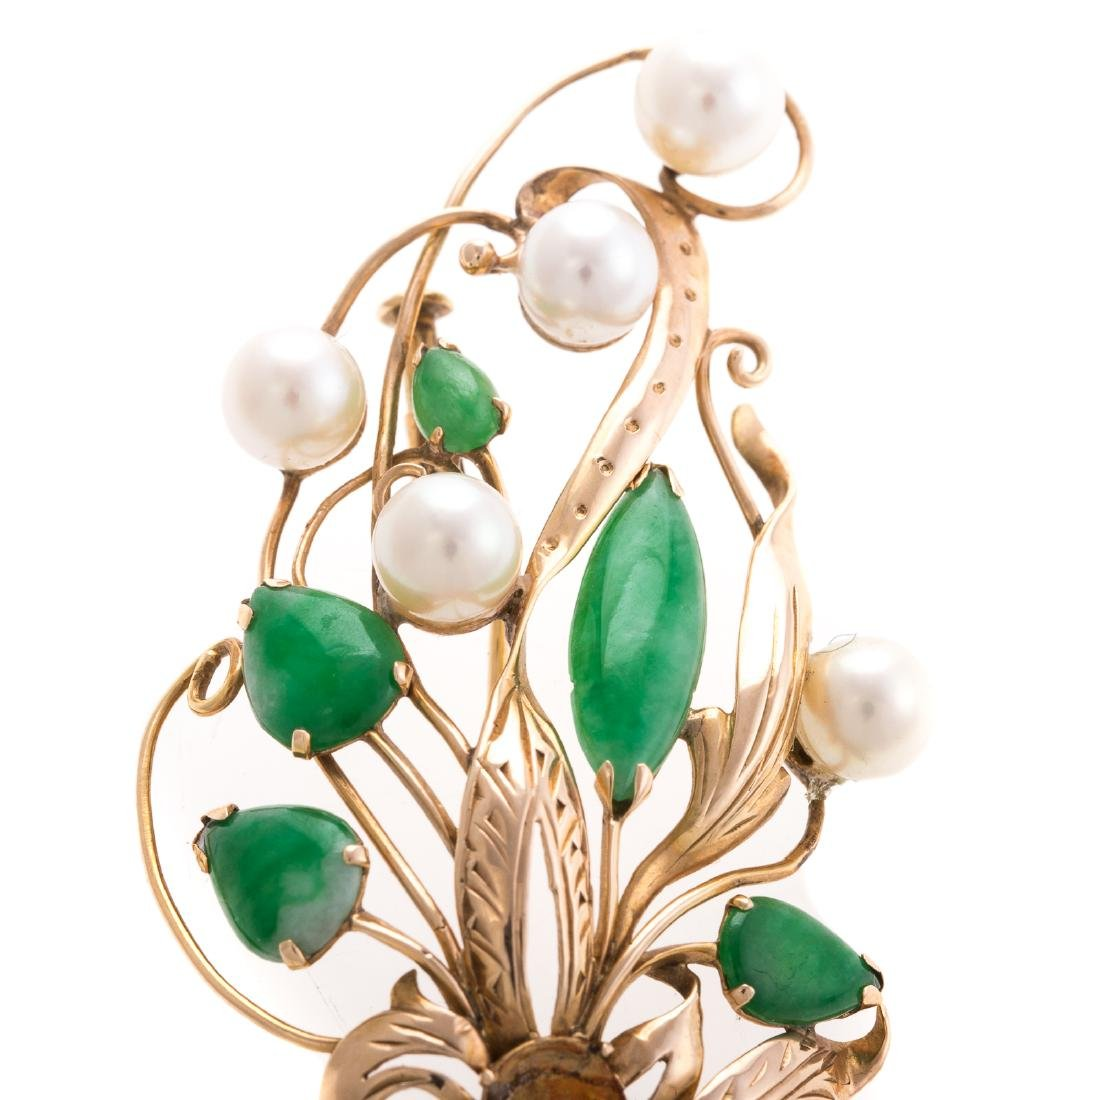 A Lady's 14K Jade and Pearl Floral Pin - 2